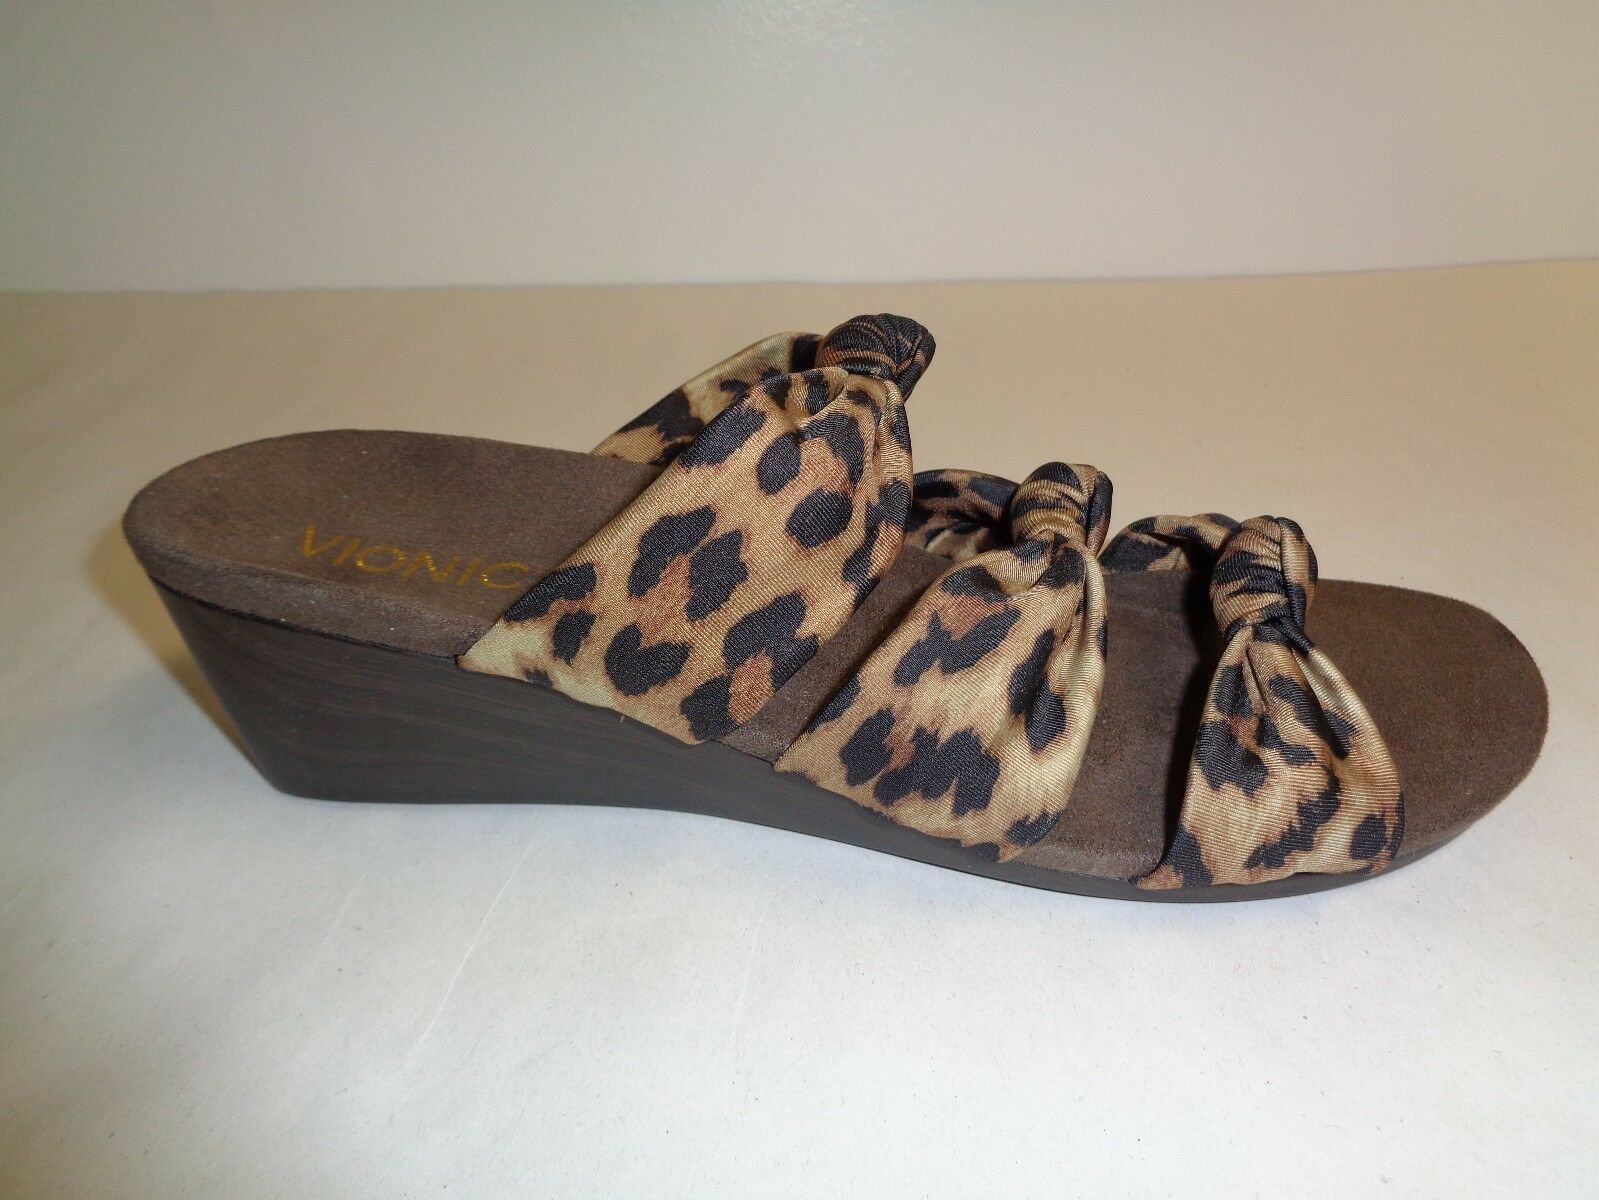 Vionic Size 6 PARK RIZZO Tan Leopard Wedge Sandals New Women